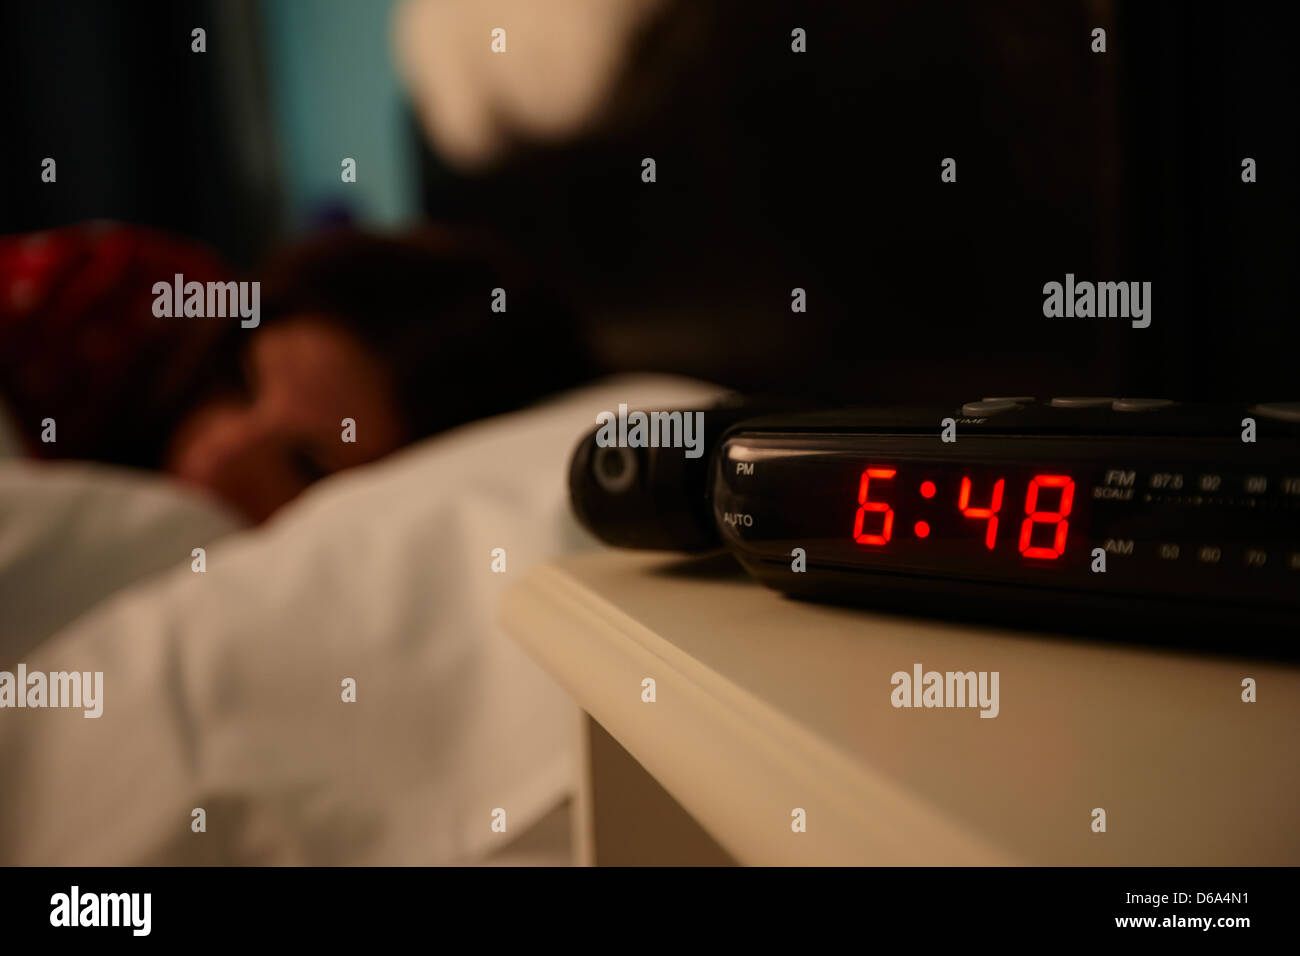 Digital Bedside Clocks Alarm Clock Early Morning With Early Twenties Woman Lying